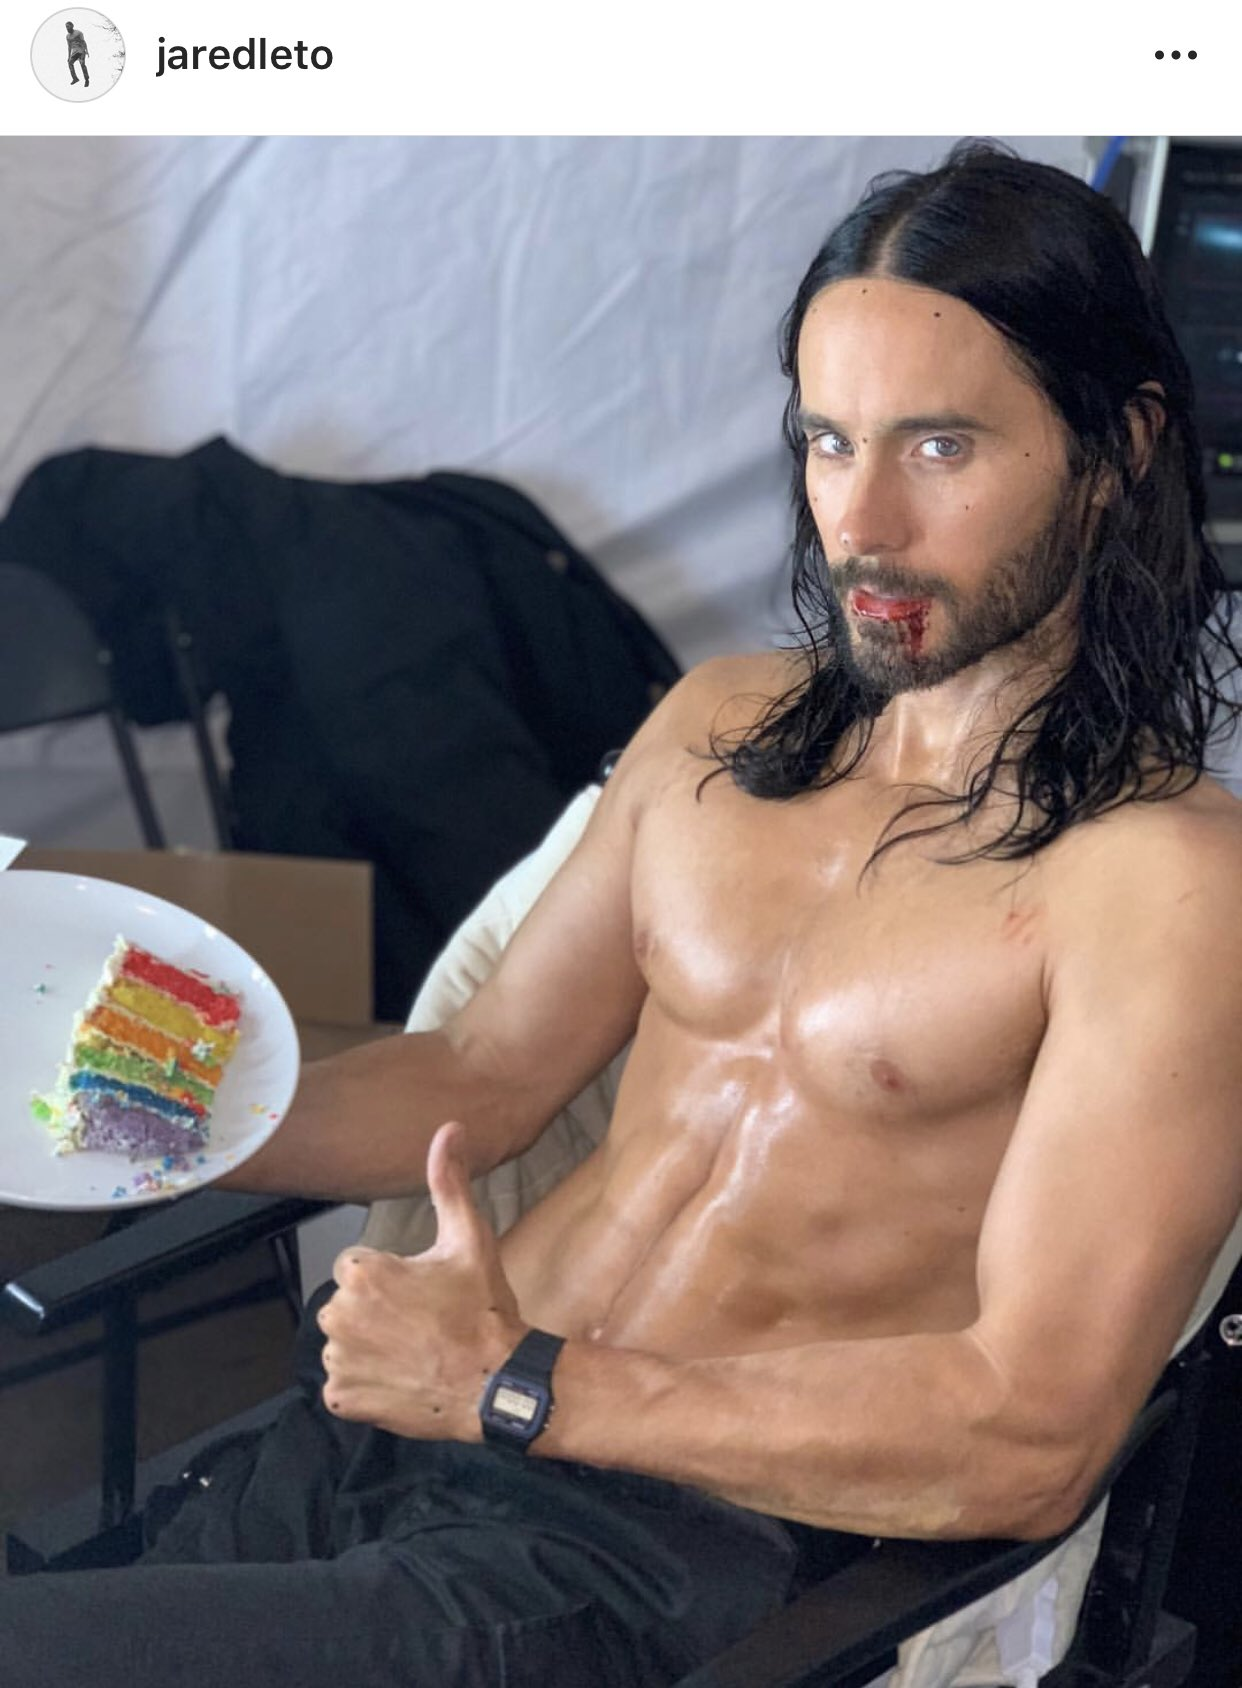 Mykie On Twitter Okay Look I M Not Saying Paul Rudd Doesn T Look Great At 50 But I Raise You With Jared Leto At 47